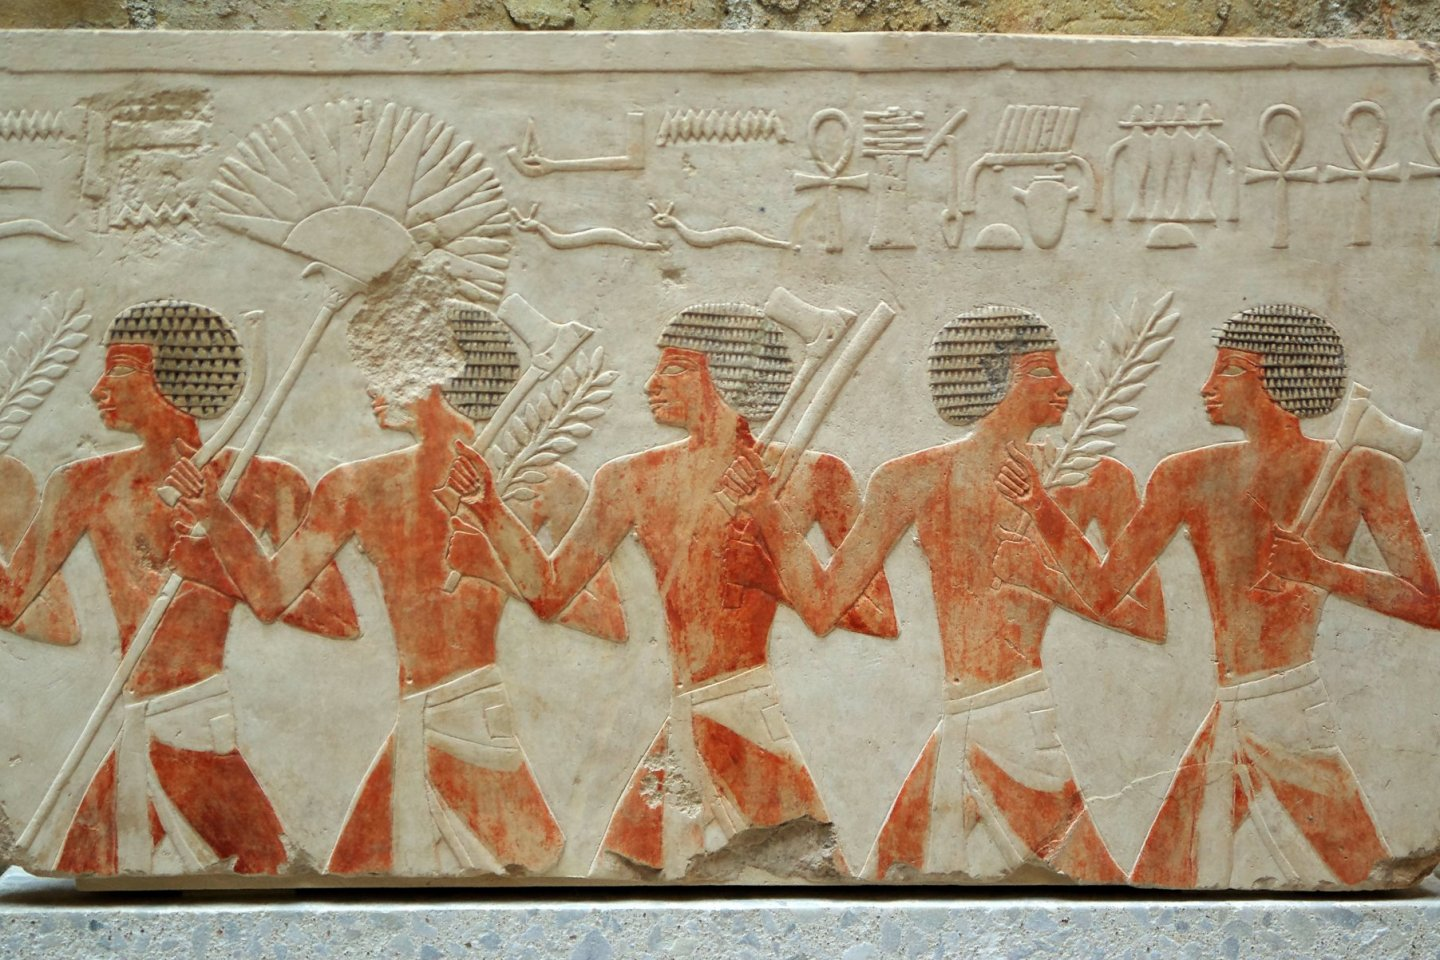 The event will showcase various pieces from the Egyptian Museum in Berlin, Germany